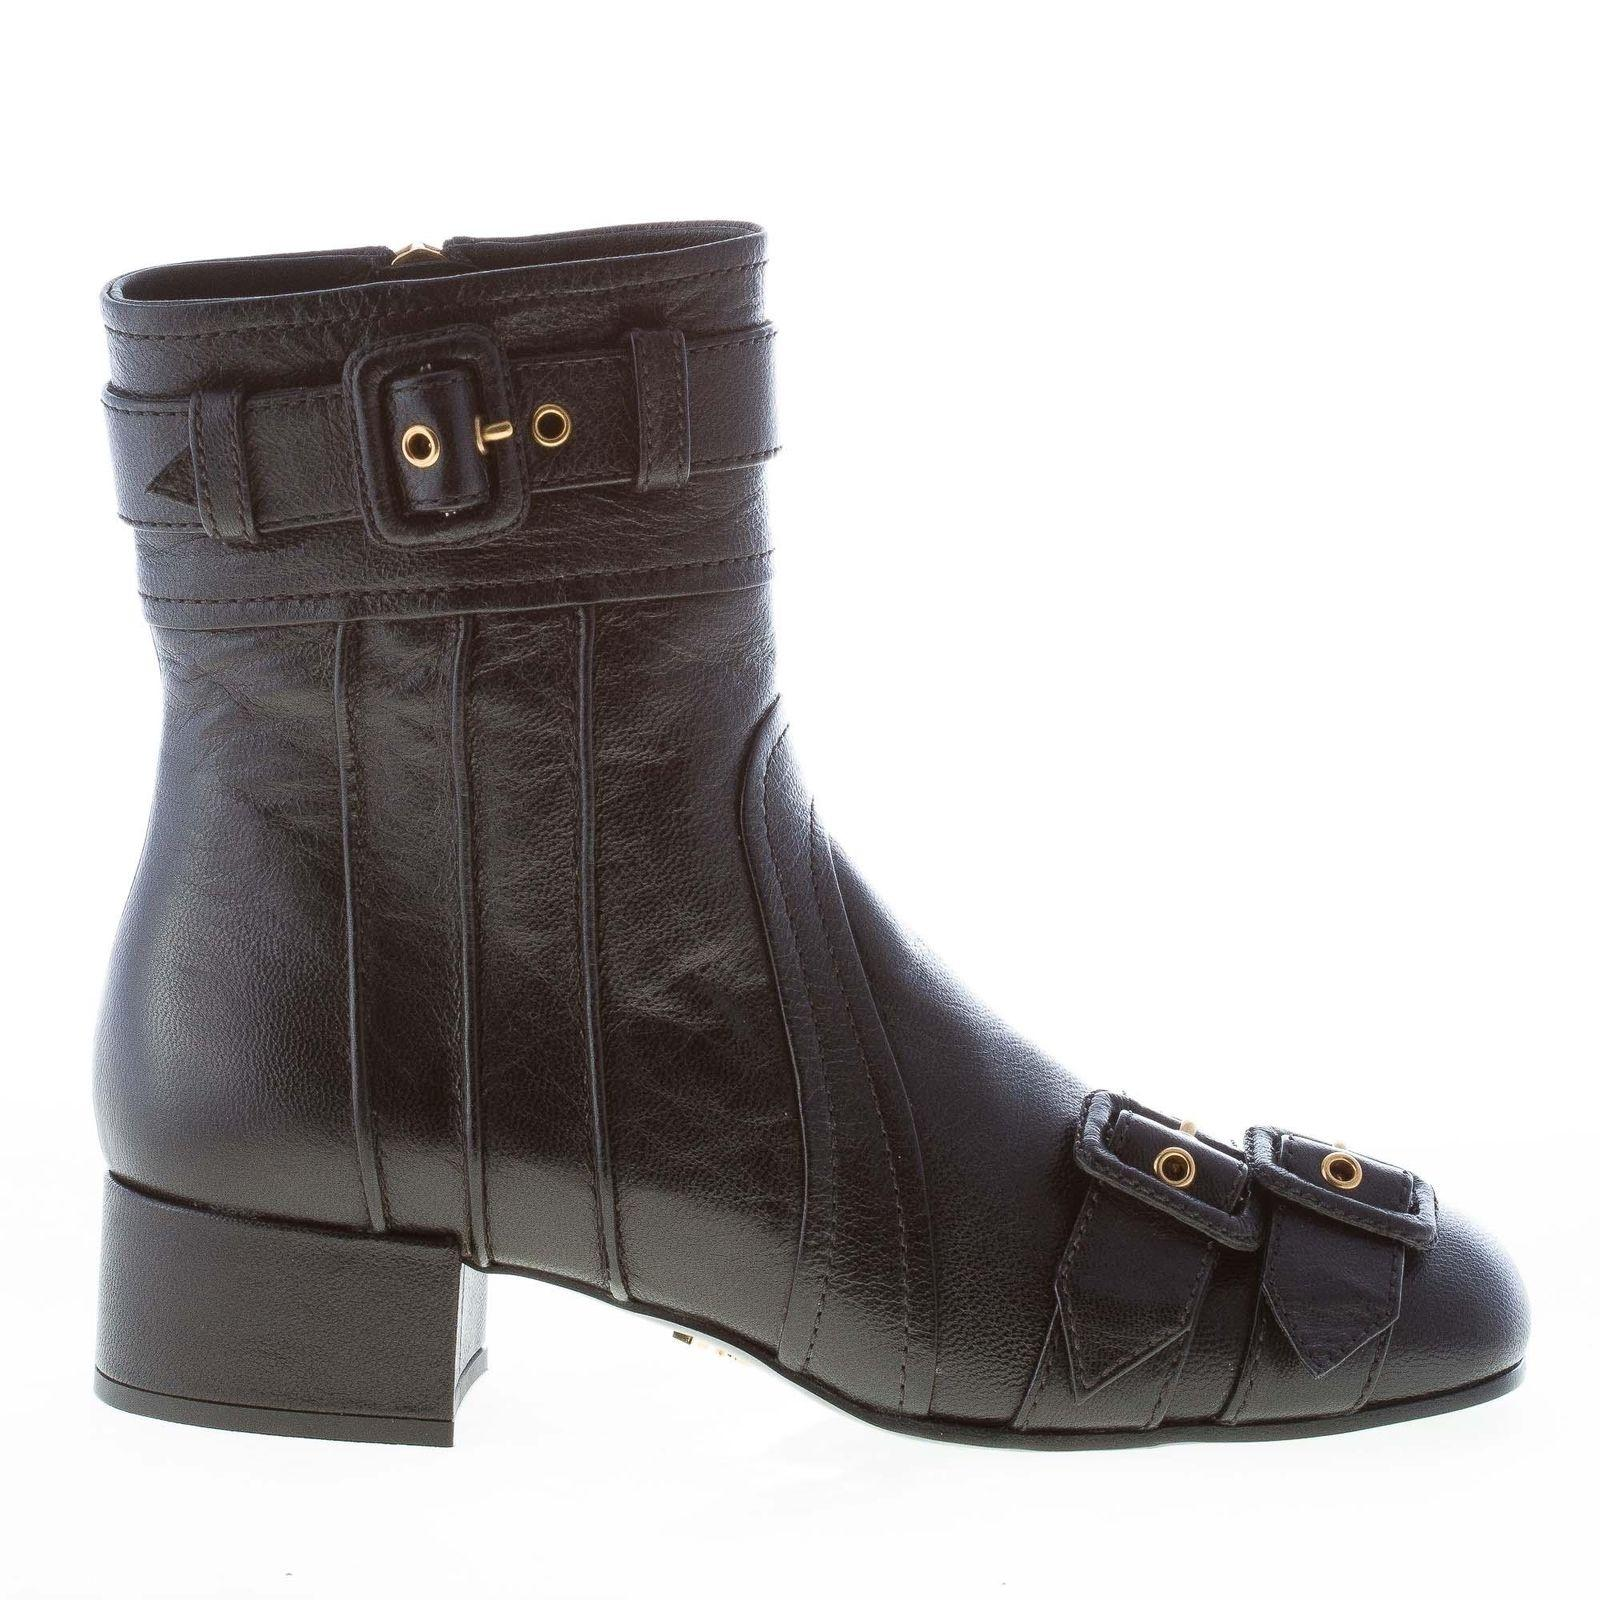 5277873d3 Prada Black Leather Ankle Straps and Buckles Boots/Booties Size EU 37  (Approx.